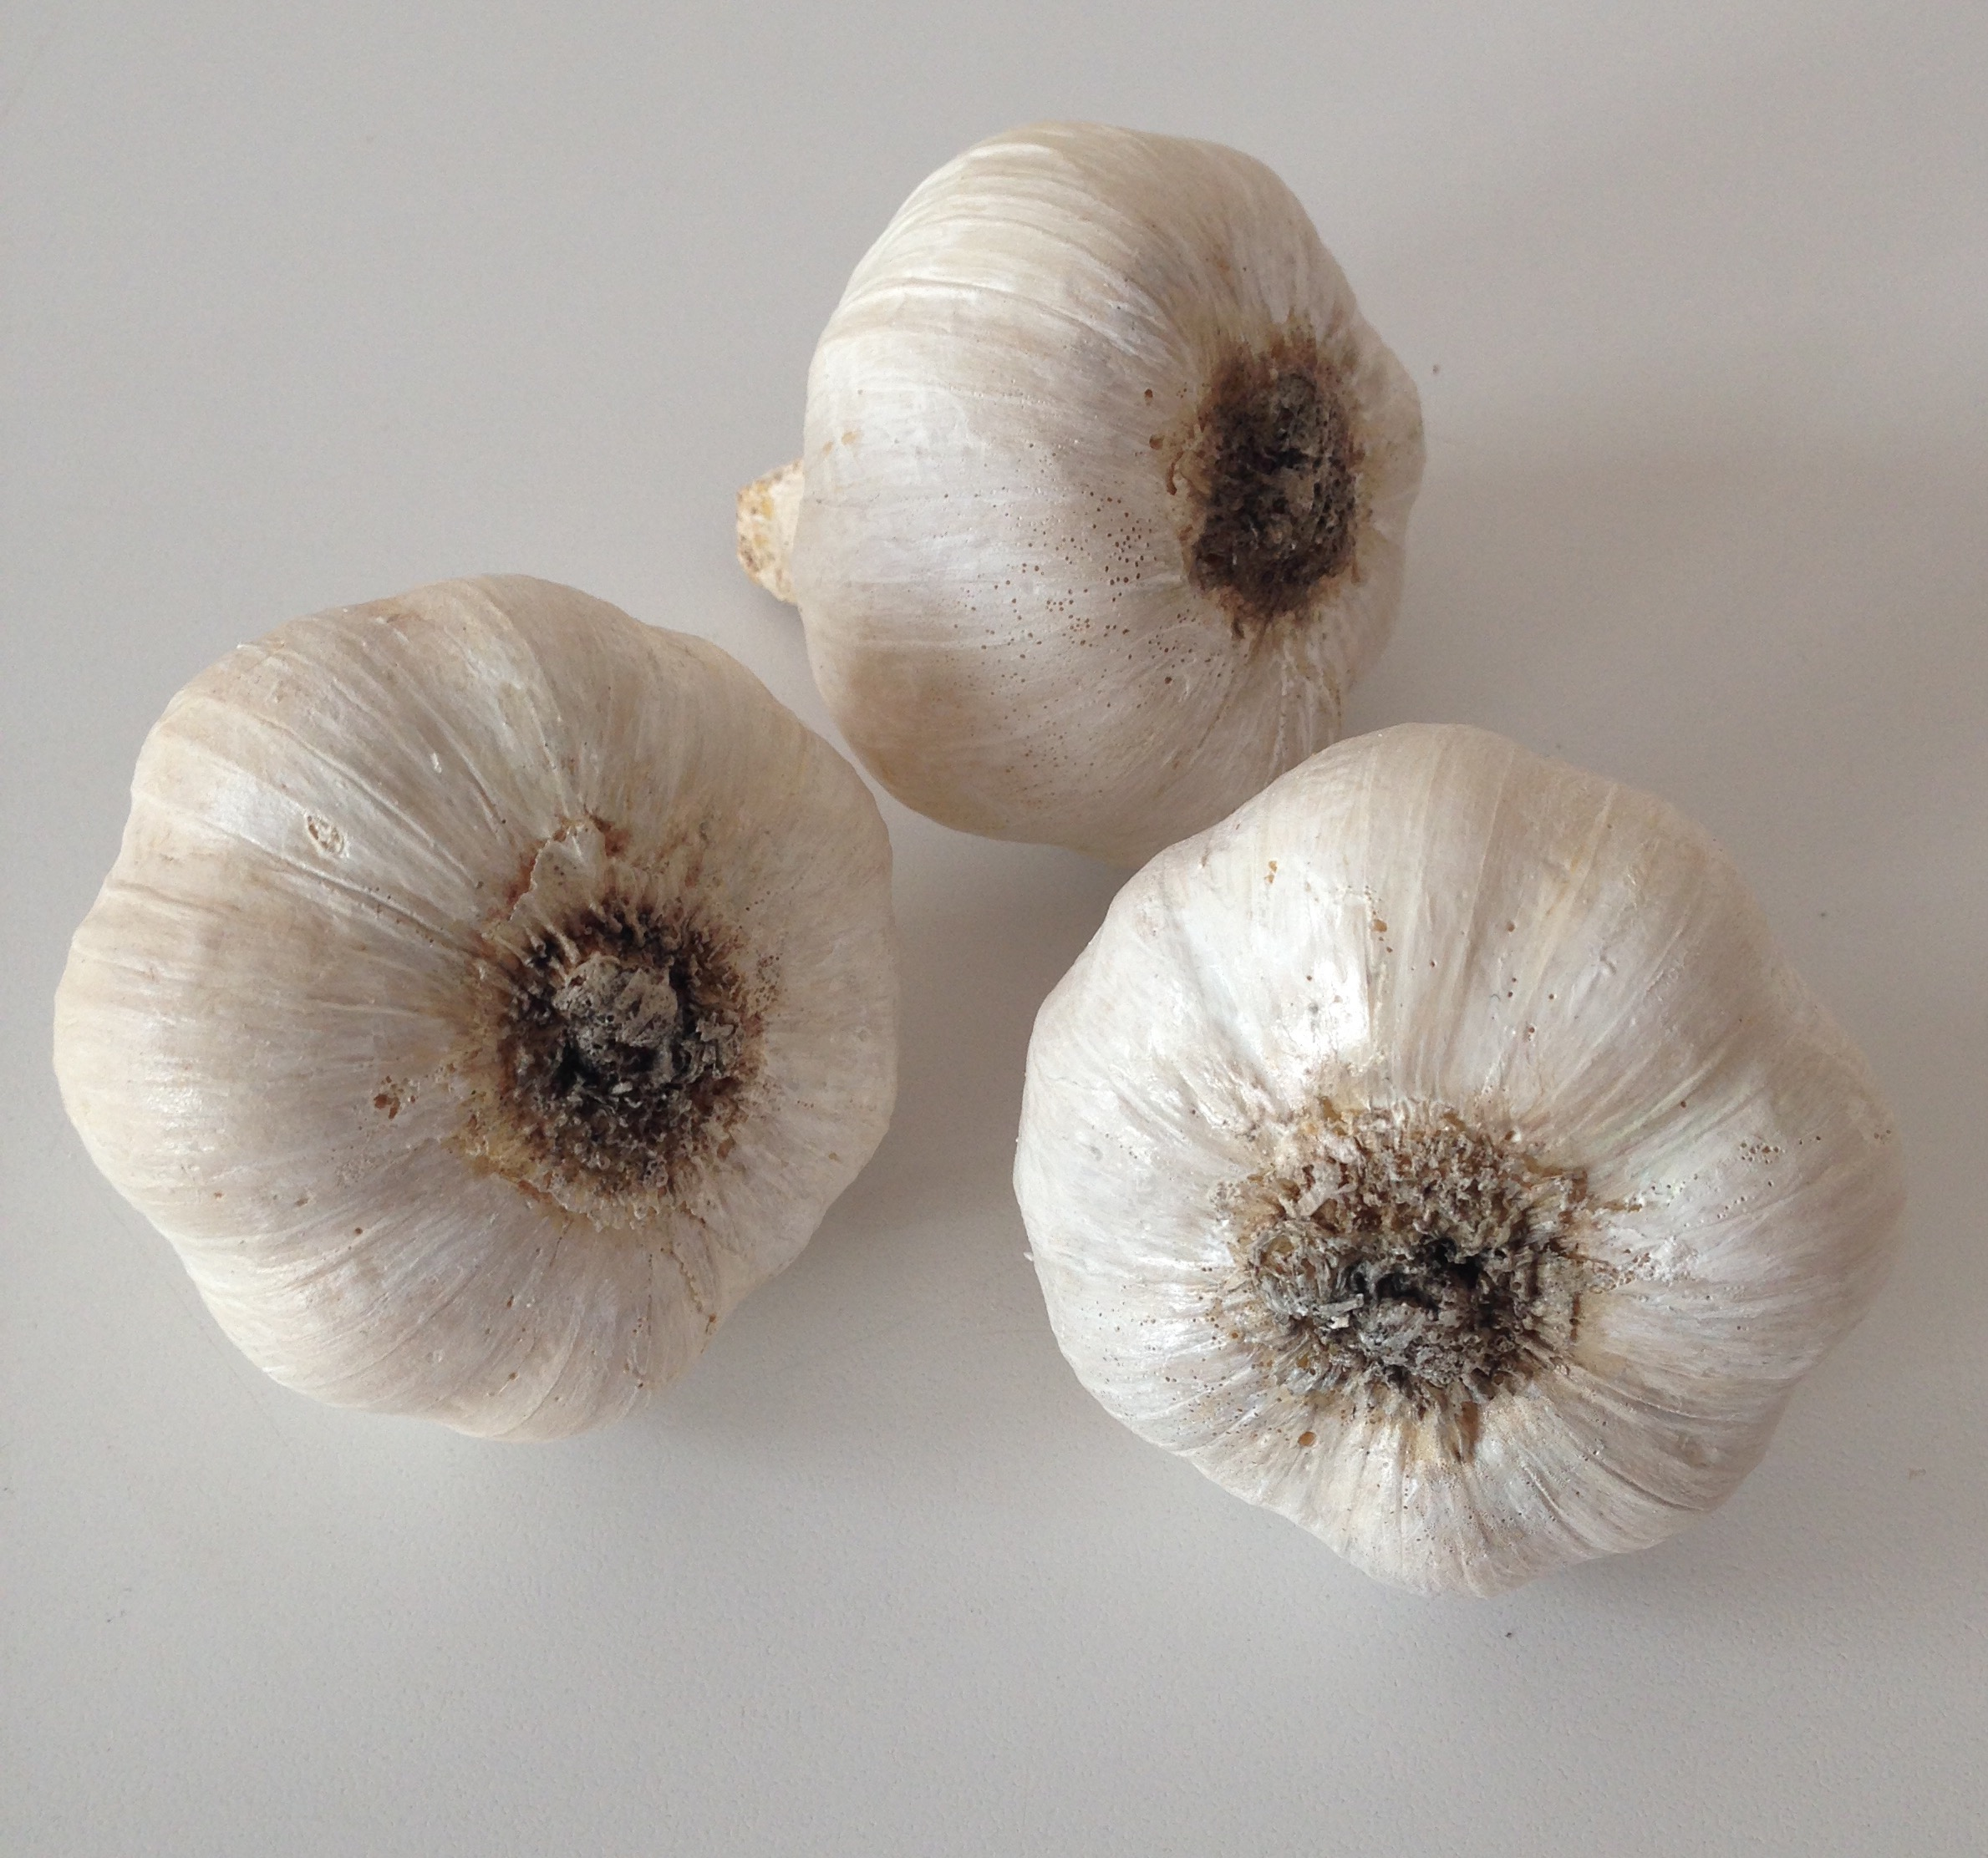 Fabricated garlic